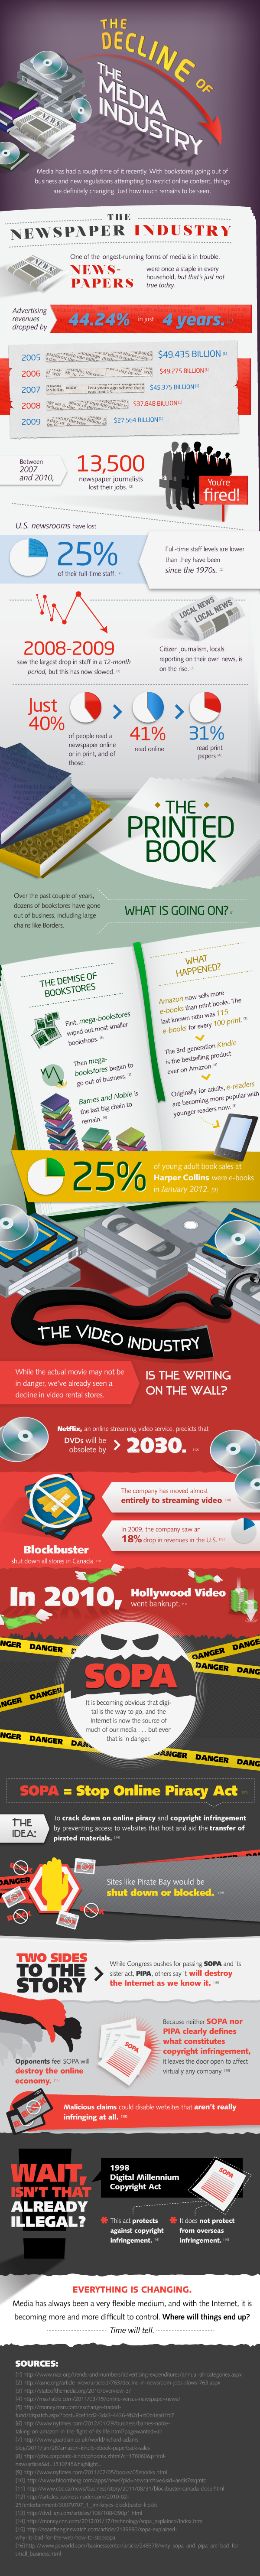 The-Decline-Of-The-Traditional-Media-Industry-infographic